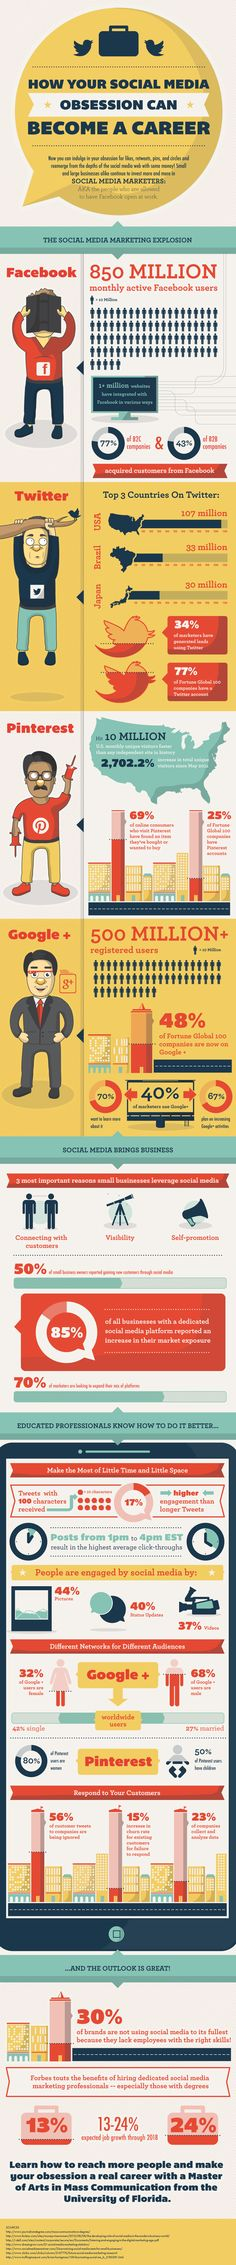 Amazing Social Media Statistics From Facebook, Twitter, Pinterest And Google+ [INFOGRAPHIC]